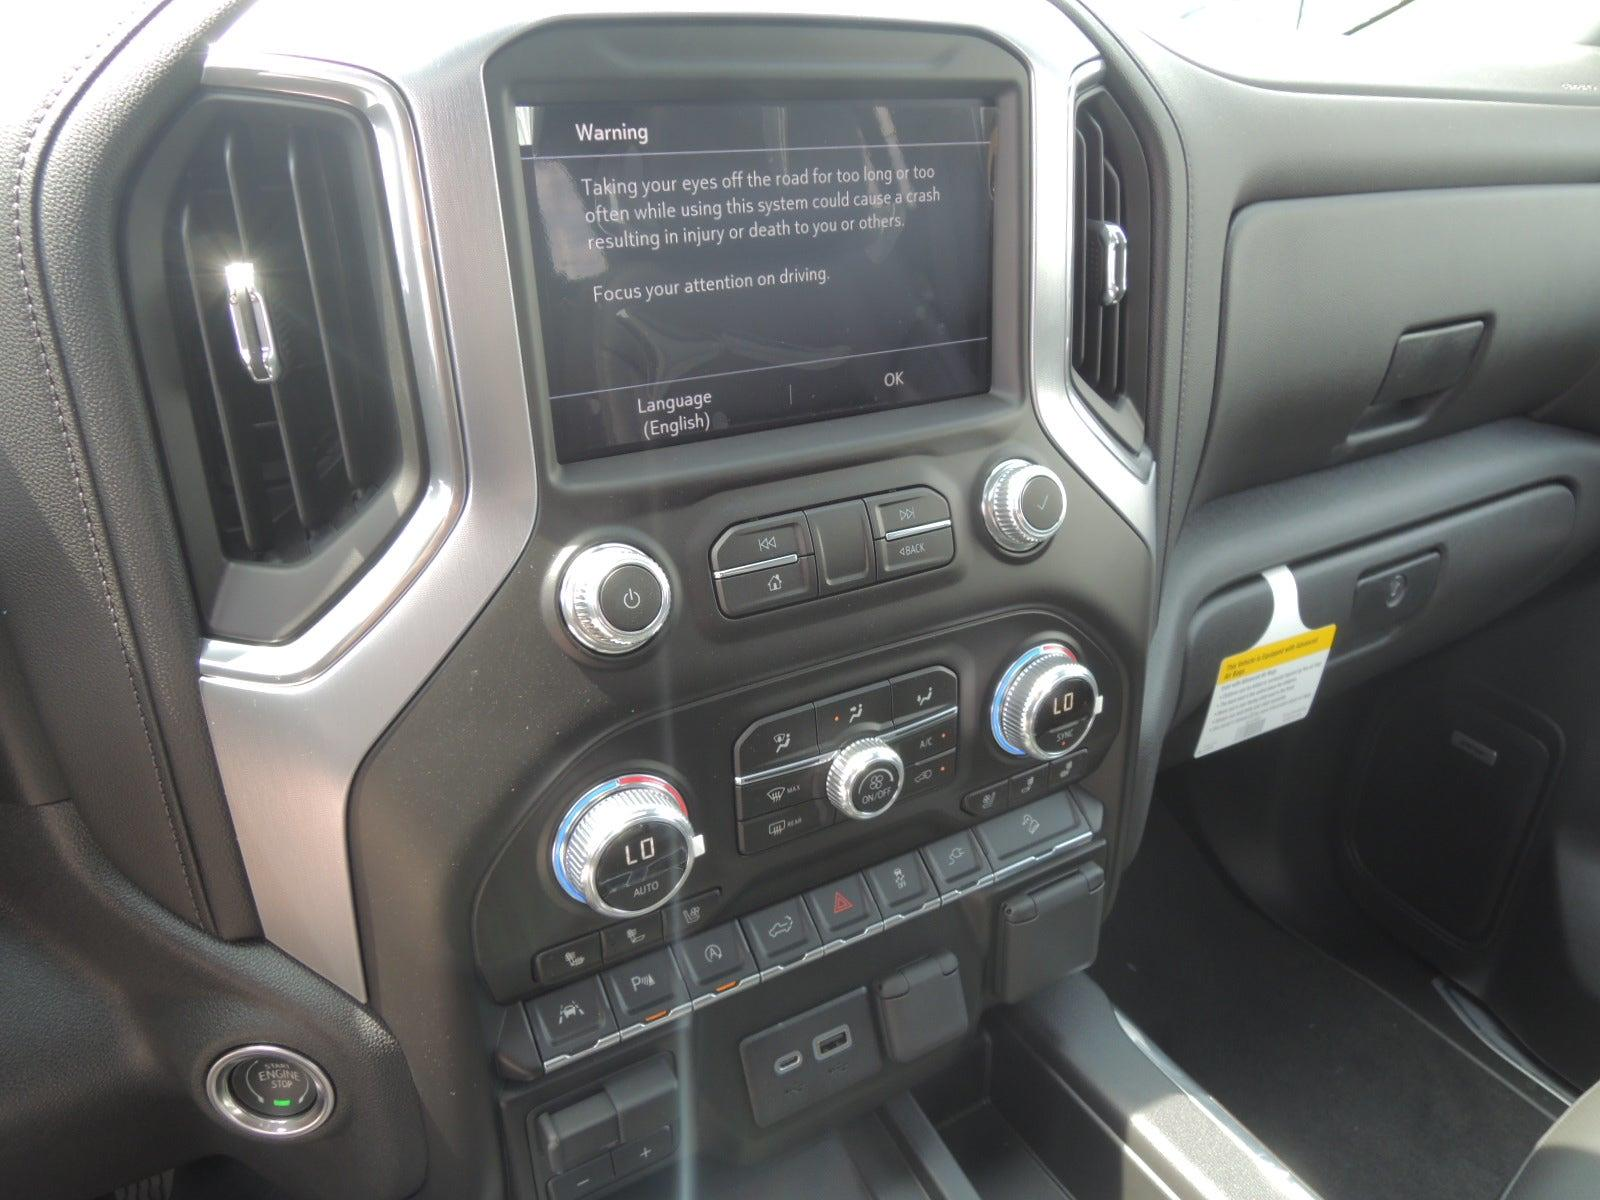 2021 GMC Sierra 1500 Crew Cab 4x4, Pickup #MT282 - photo 22